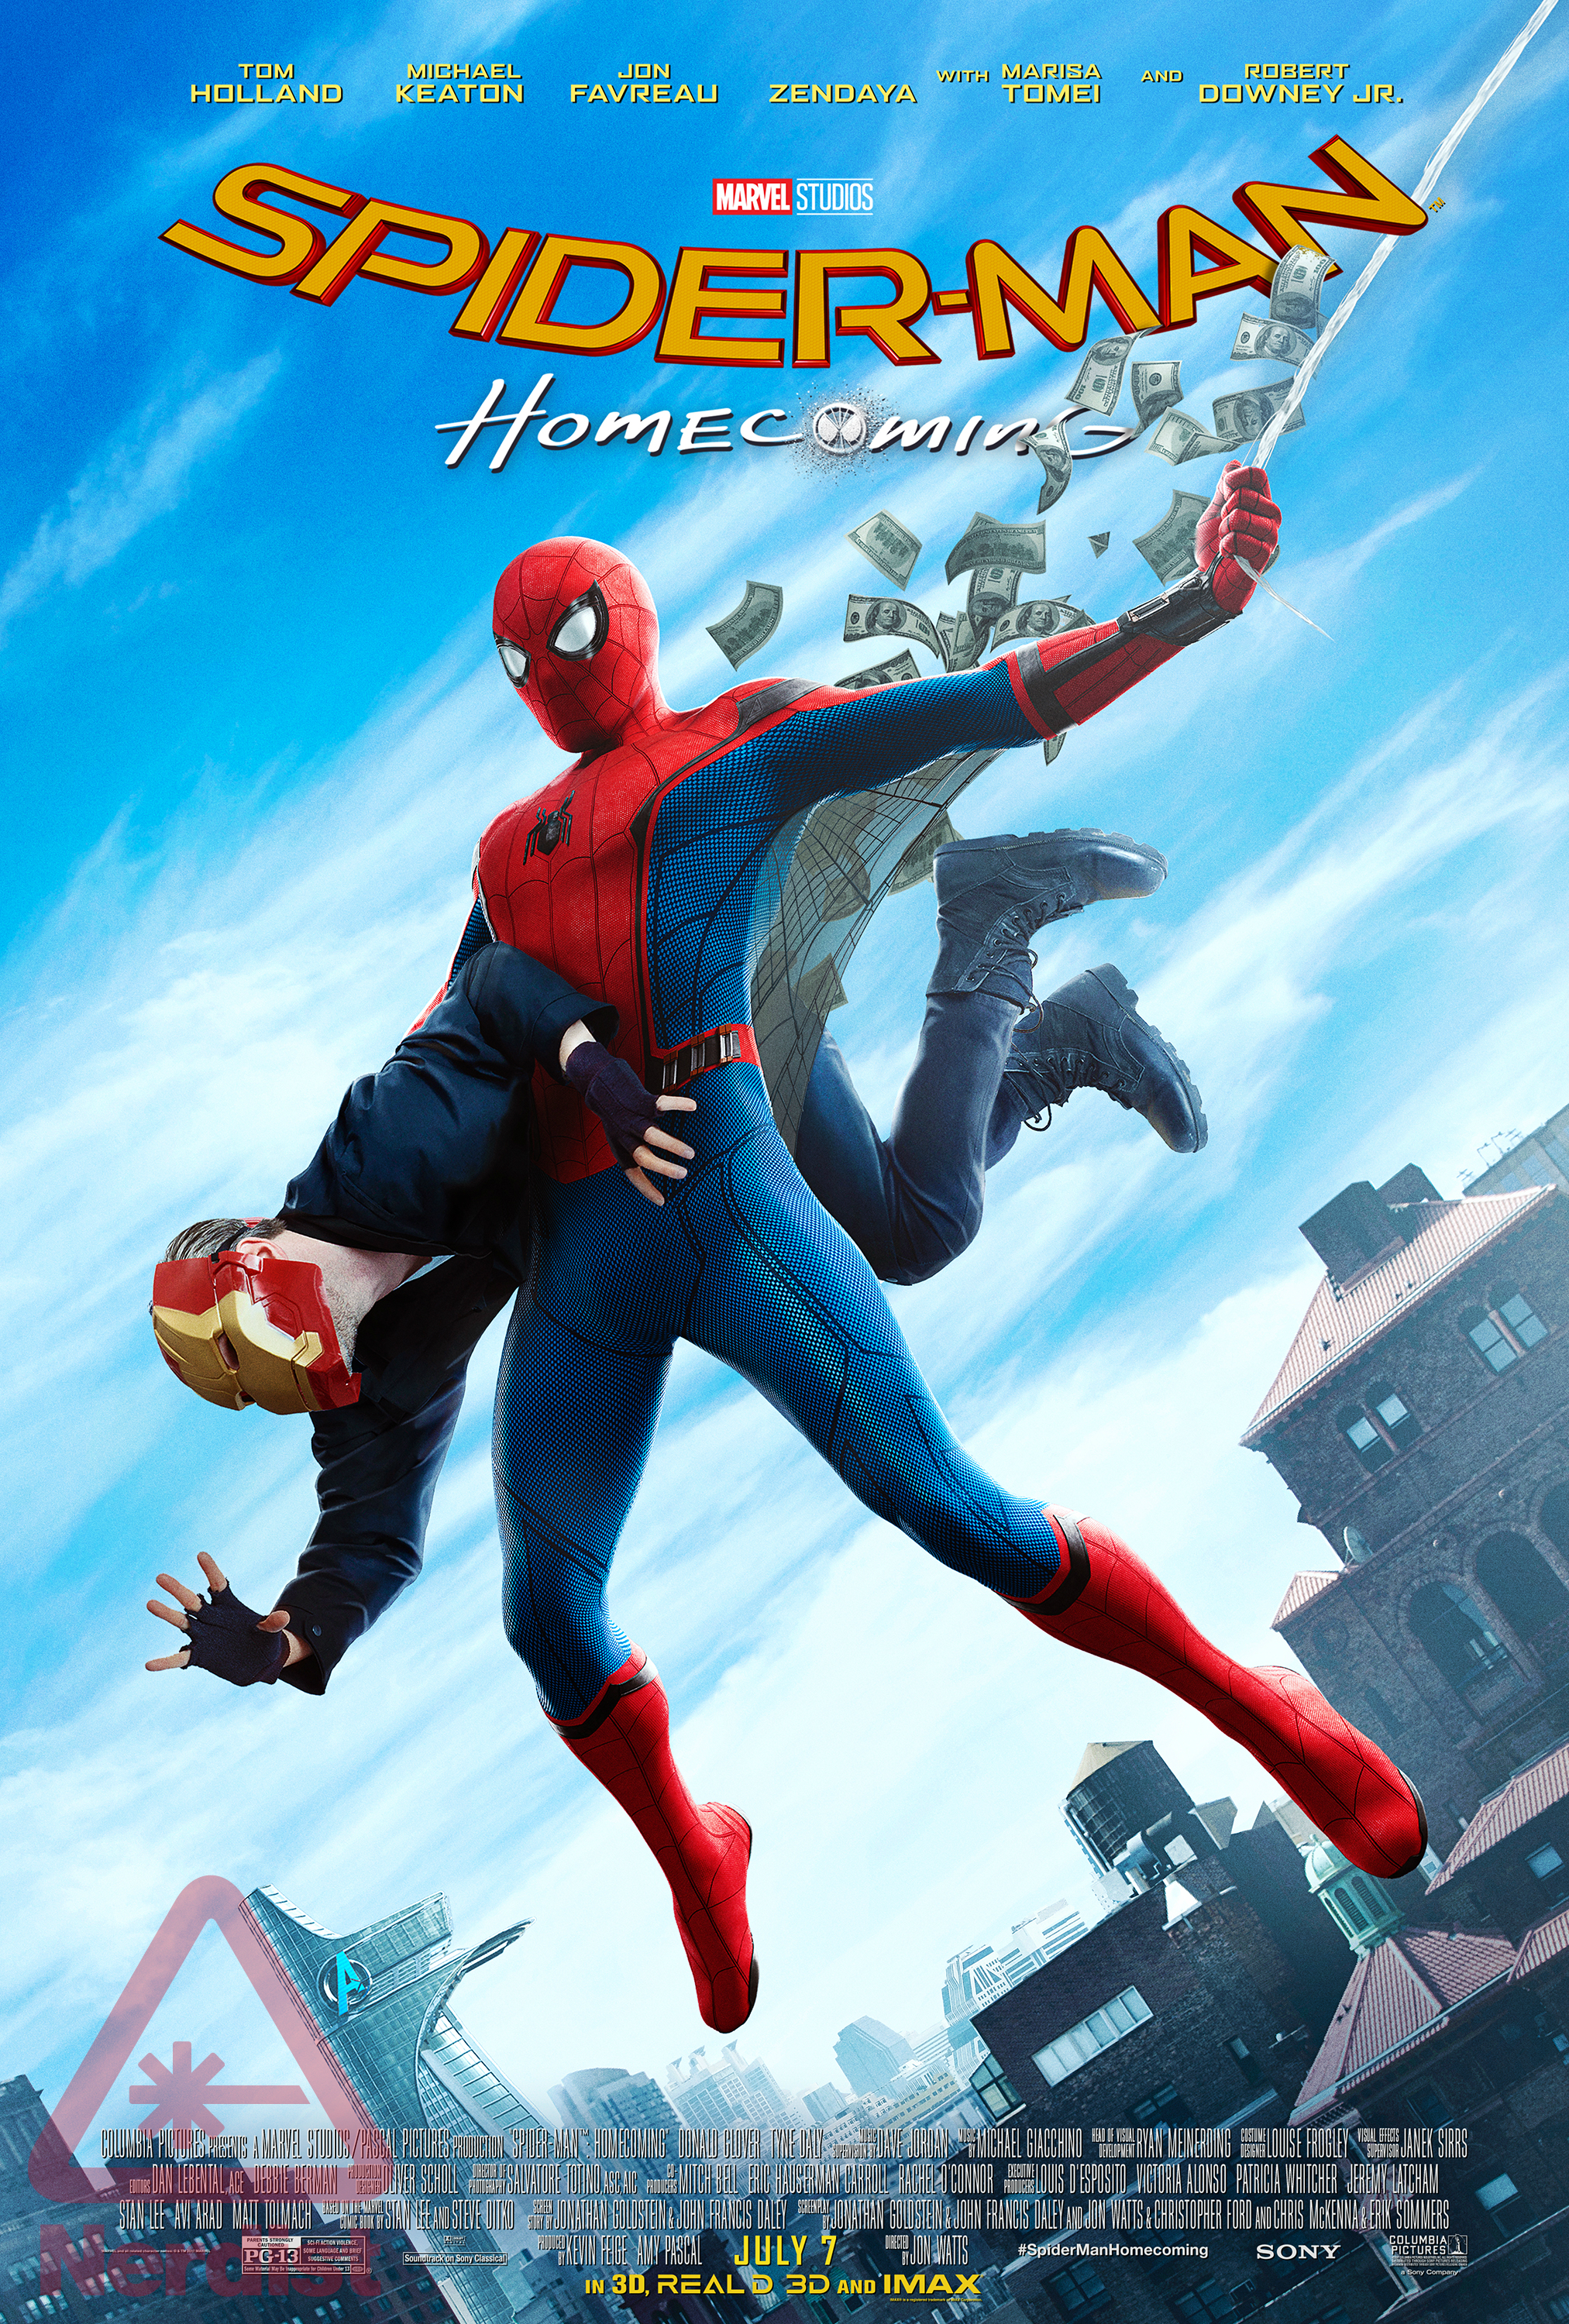 Spider-Man-Homecoming-Amazing-Fantasy-Exclusive-Poster-Nerdist